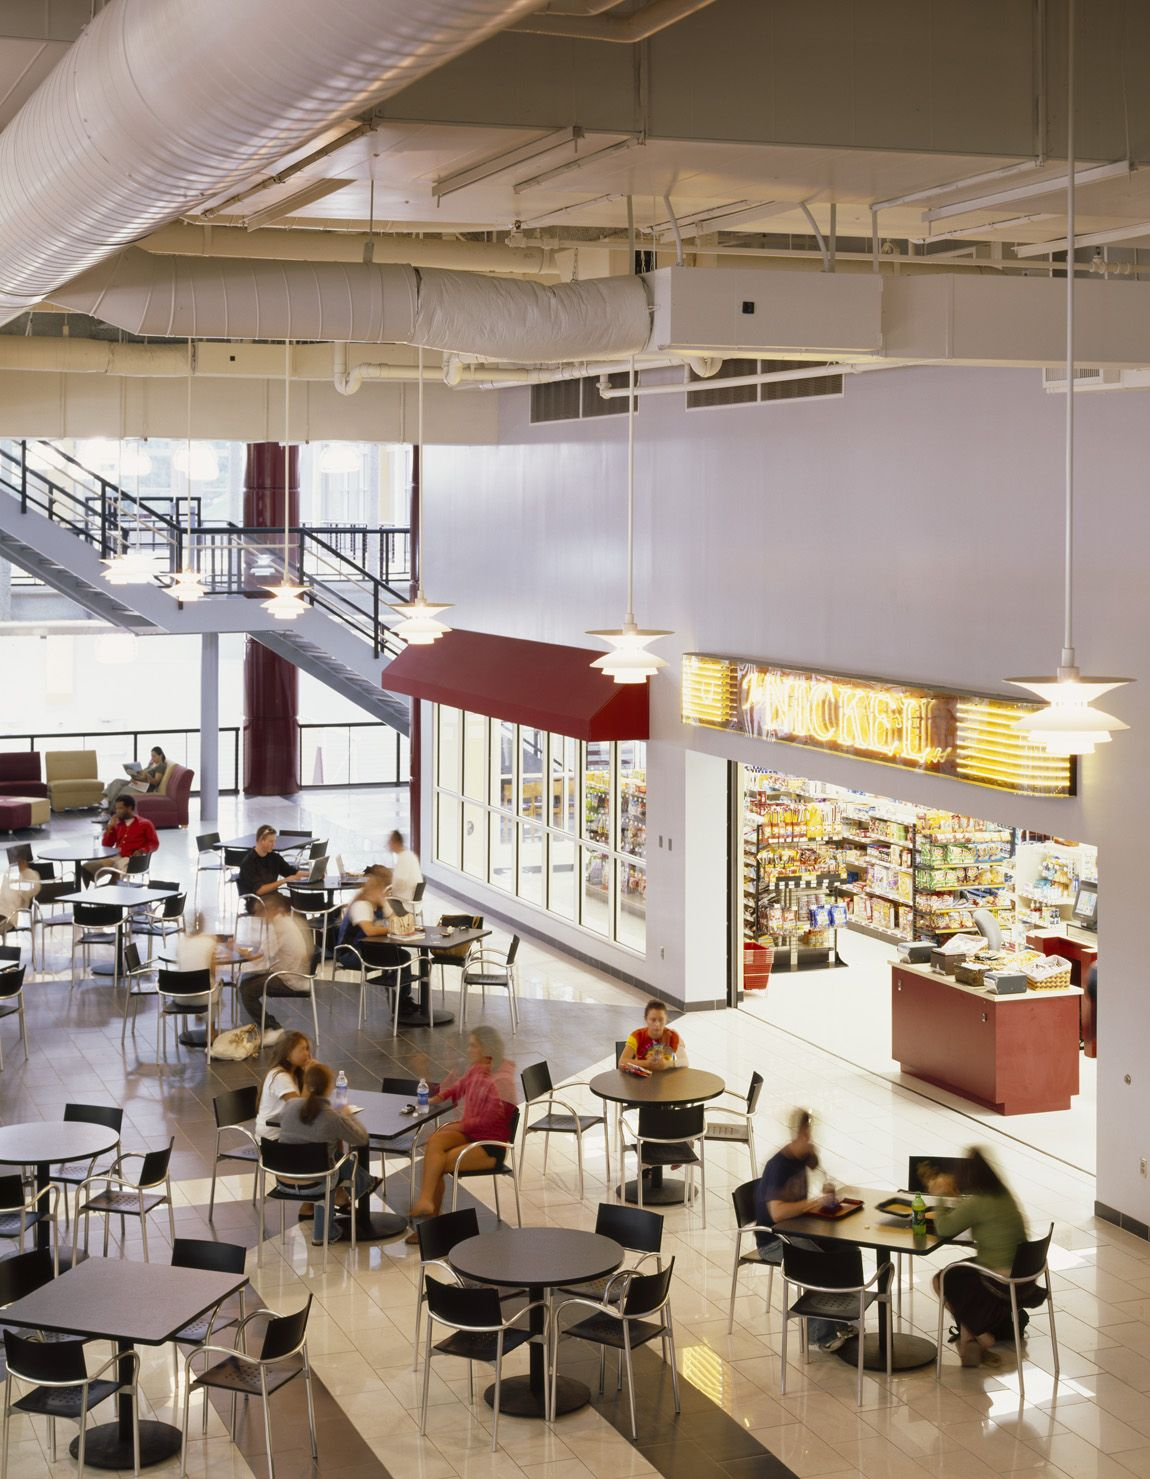 Fairmont state university student union and recreation - How many interior designers in the us ...